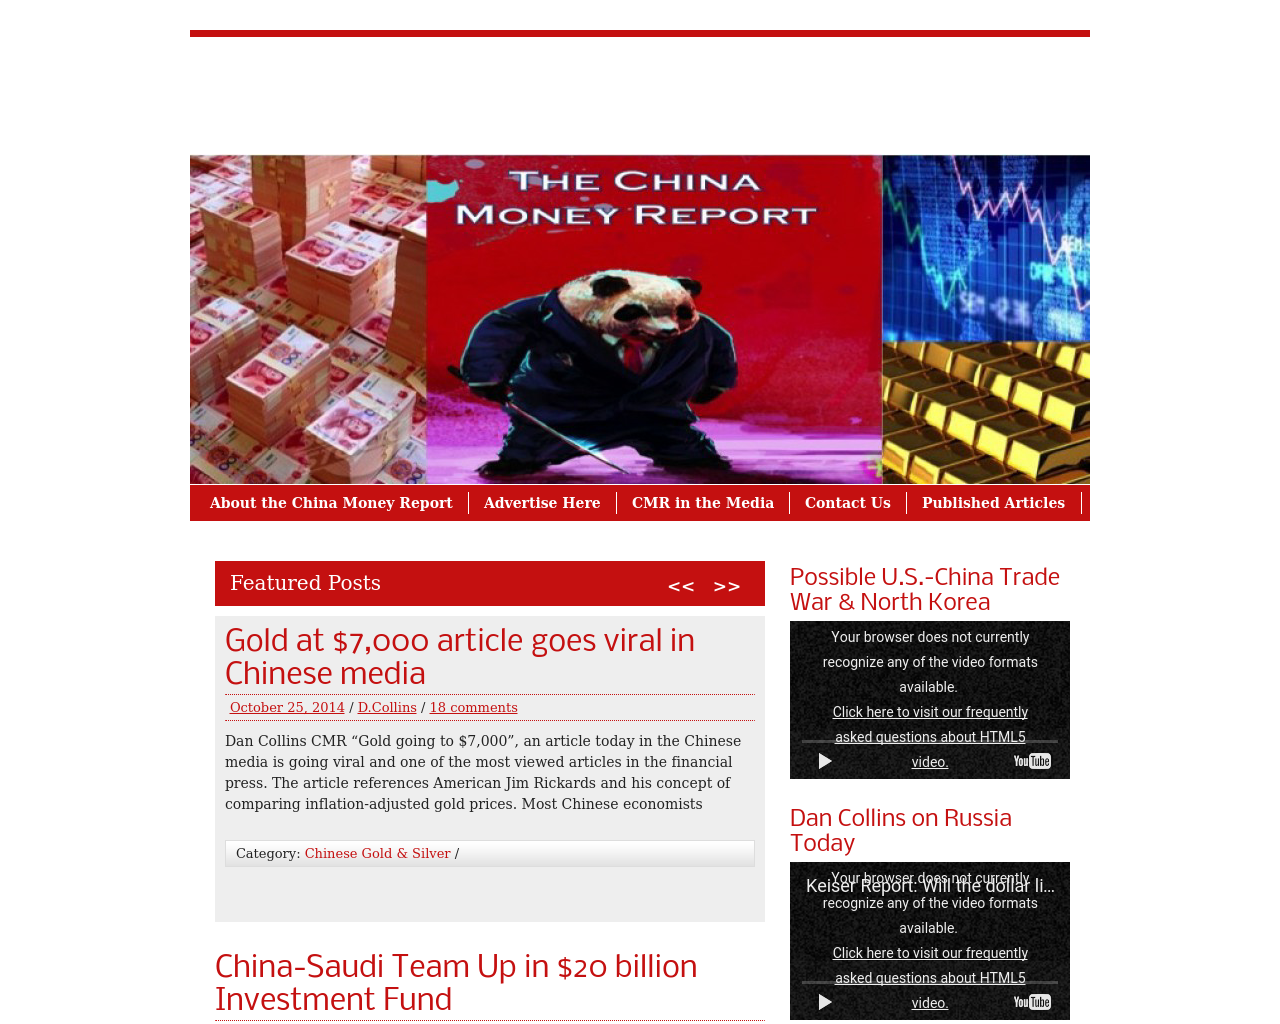 The-China-Money-Report-Advertising-Reviews-Pricing